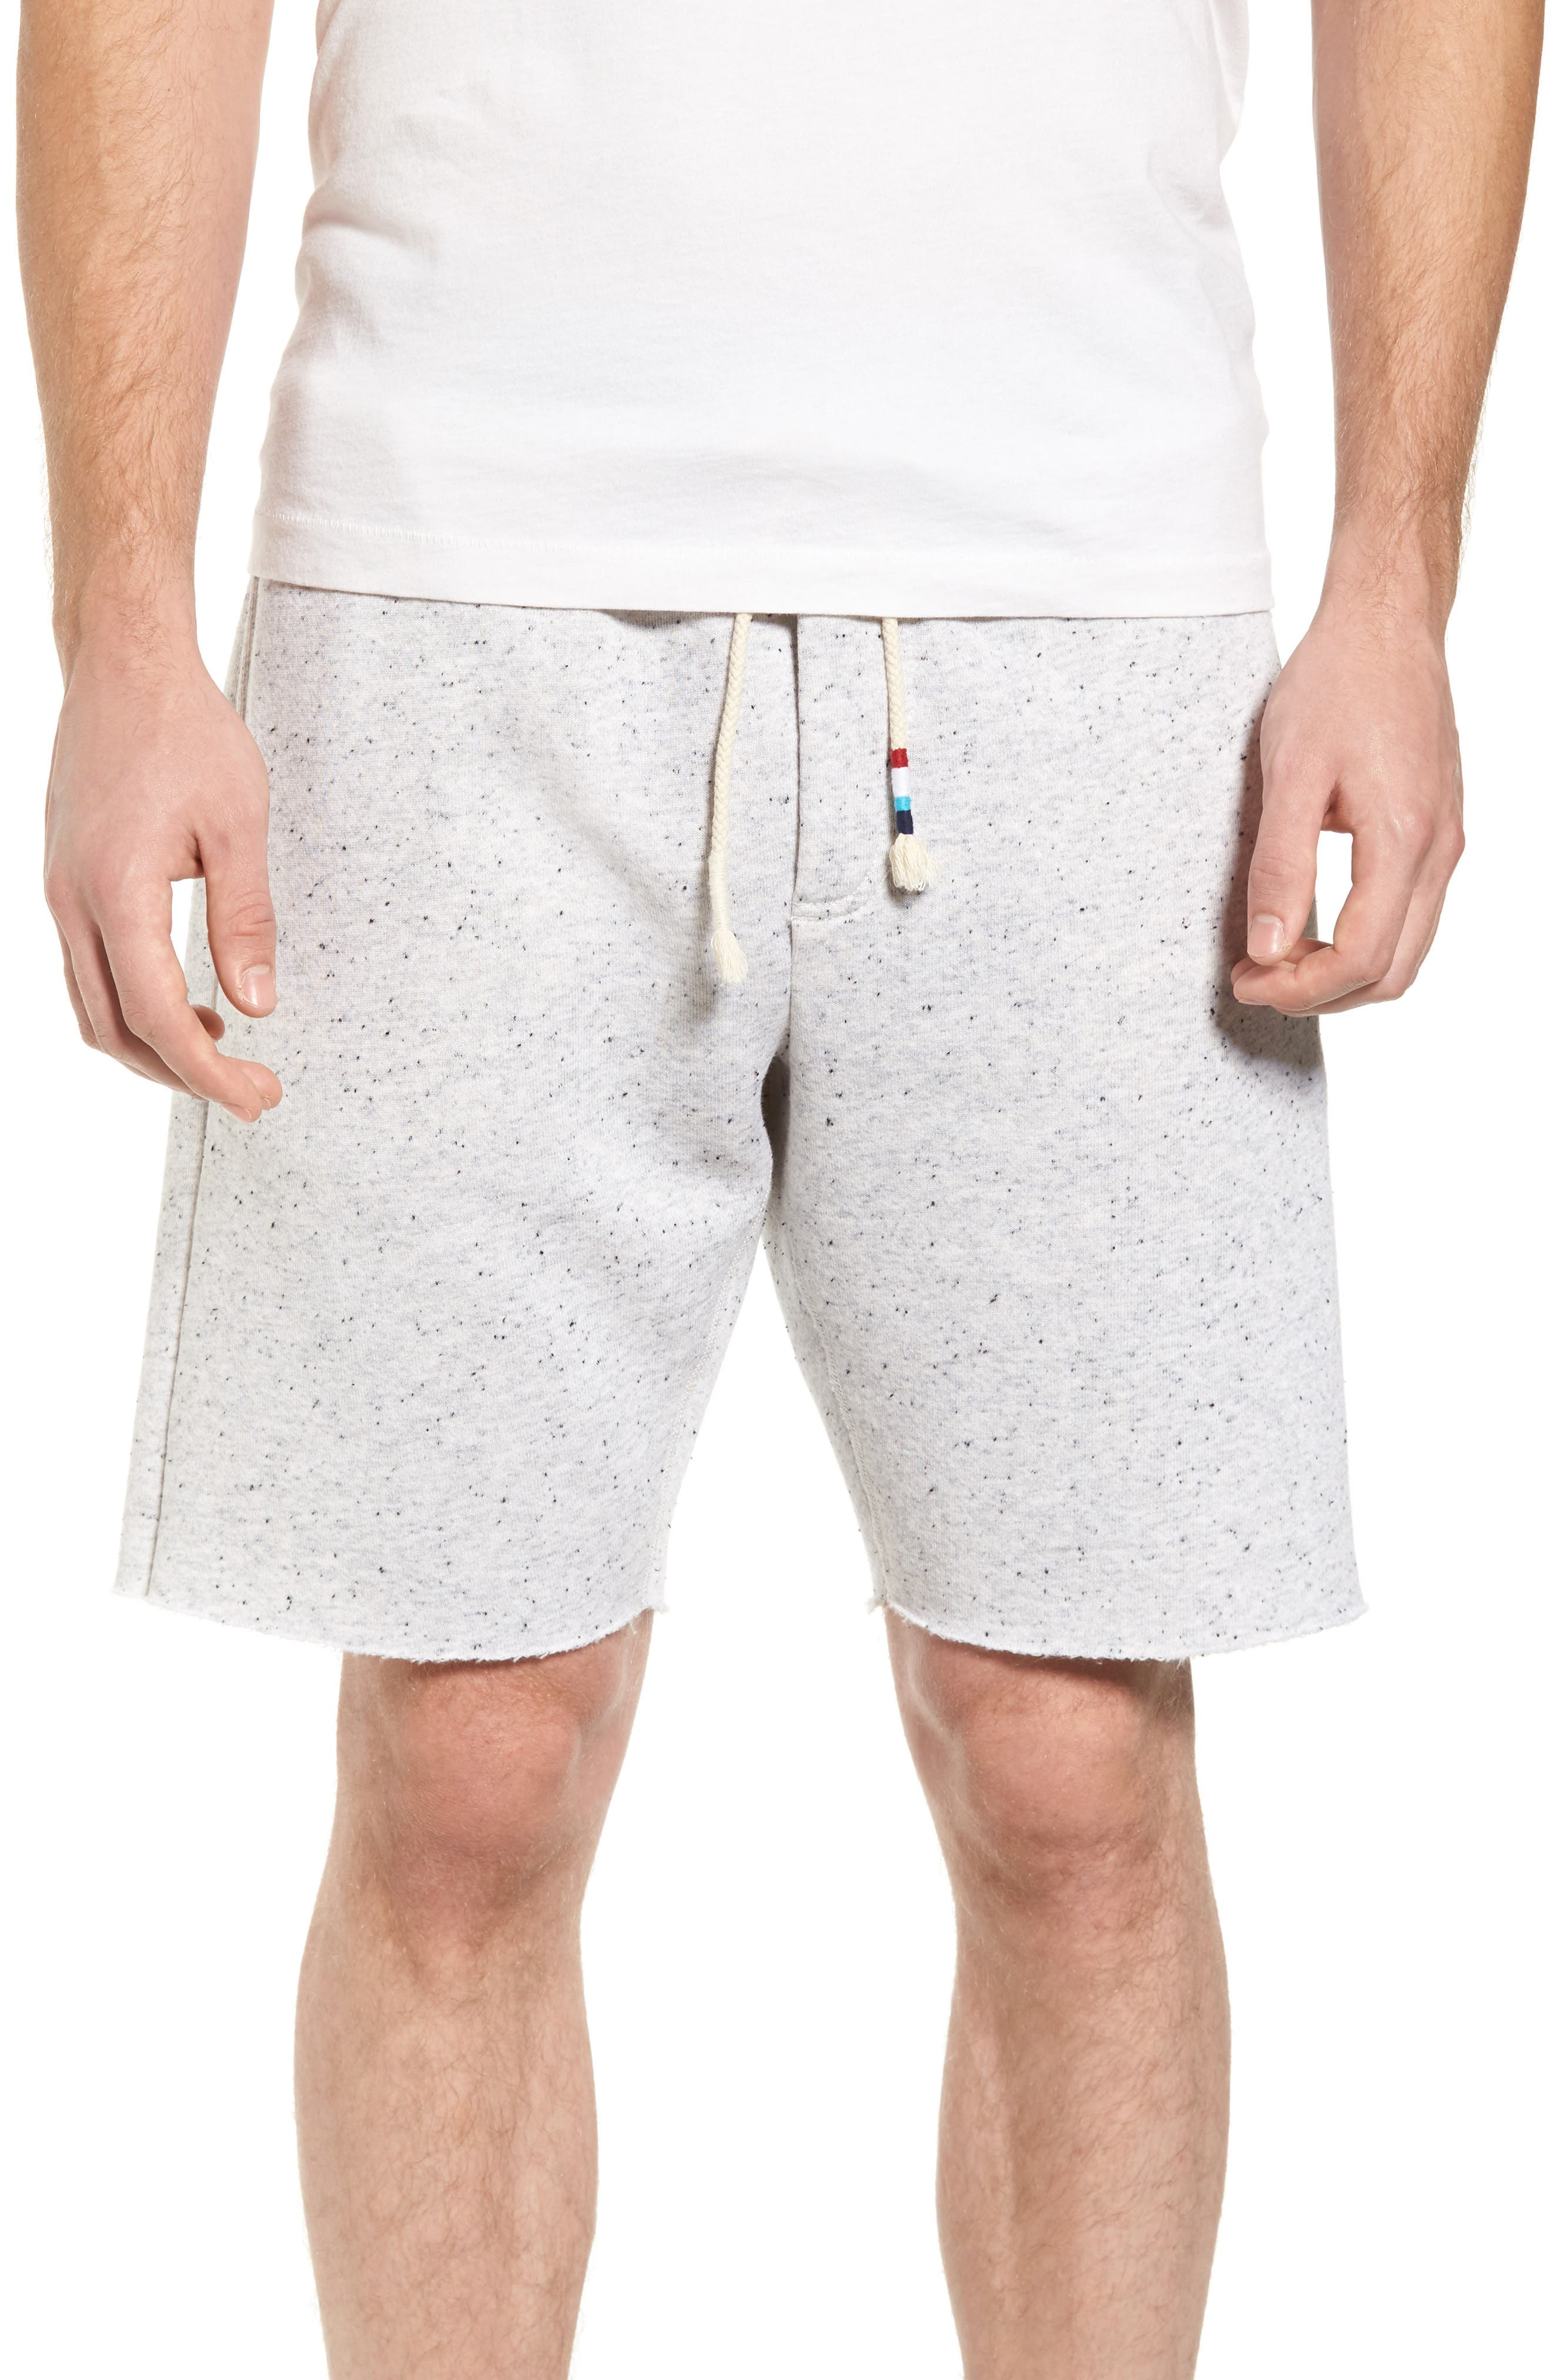 Peppered Shorts,                             Main thumbnail 1, color,                             Light Grey